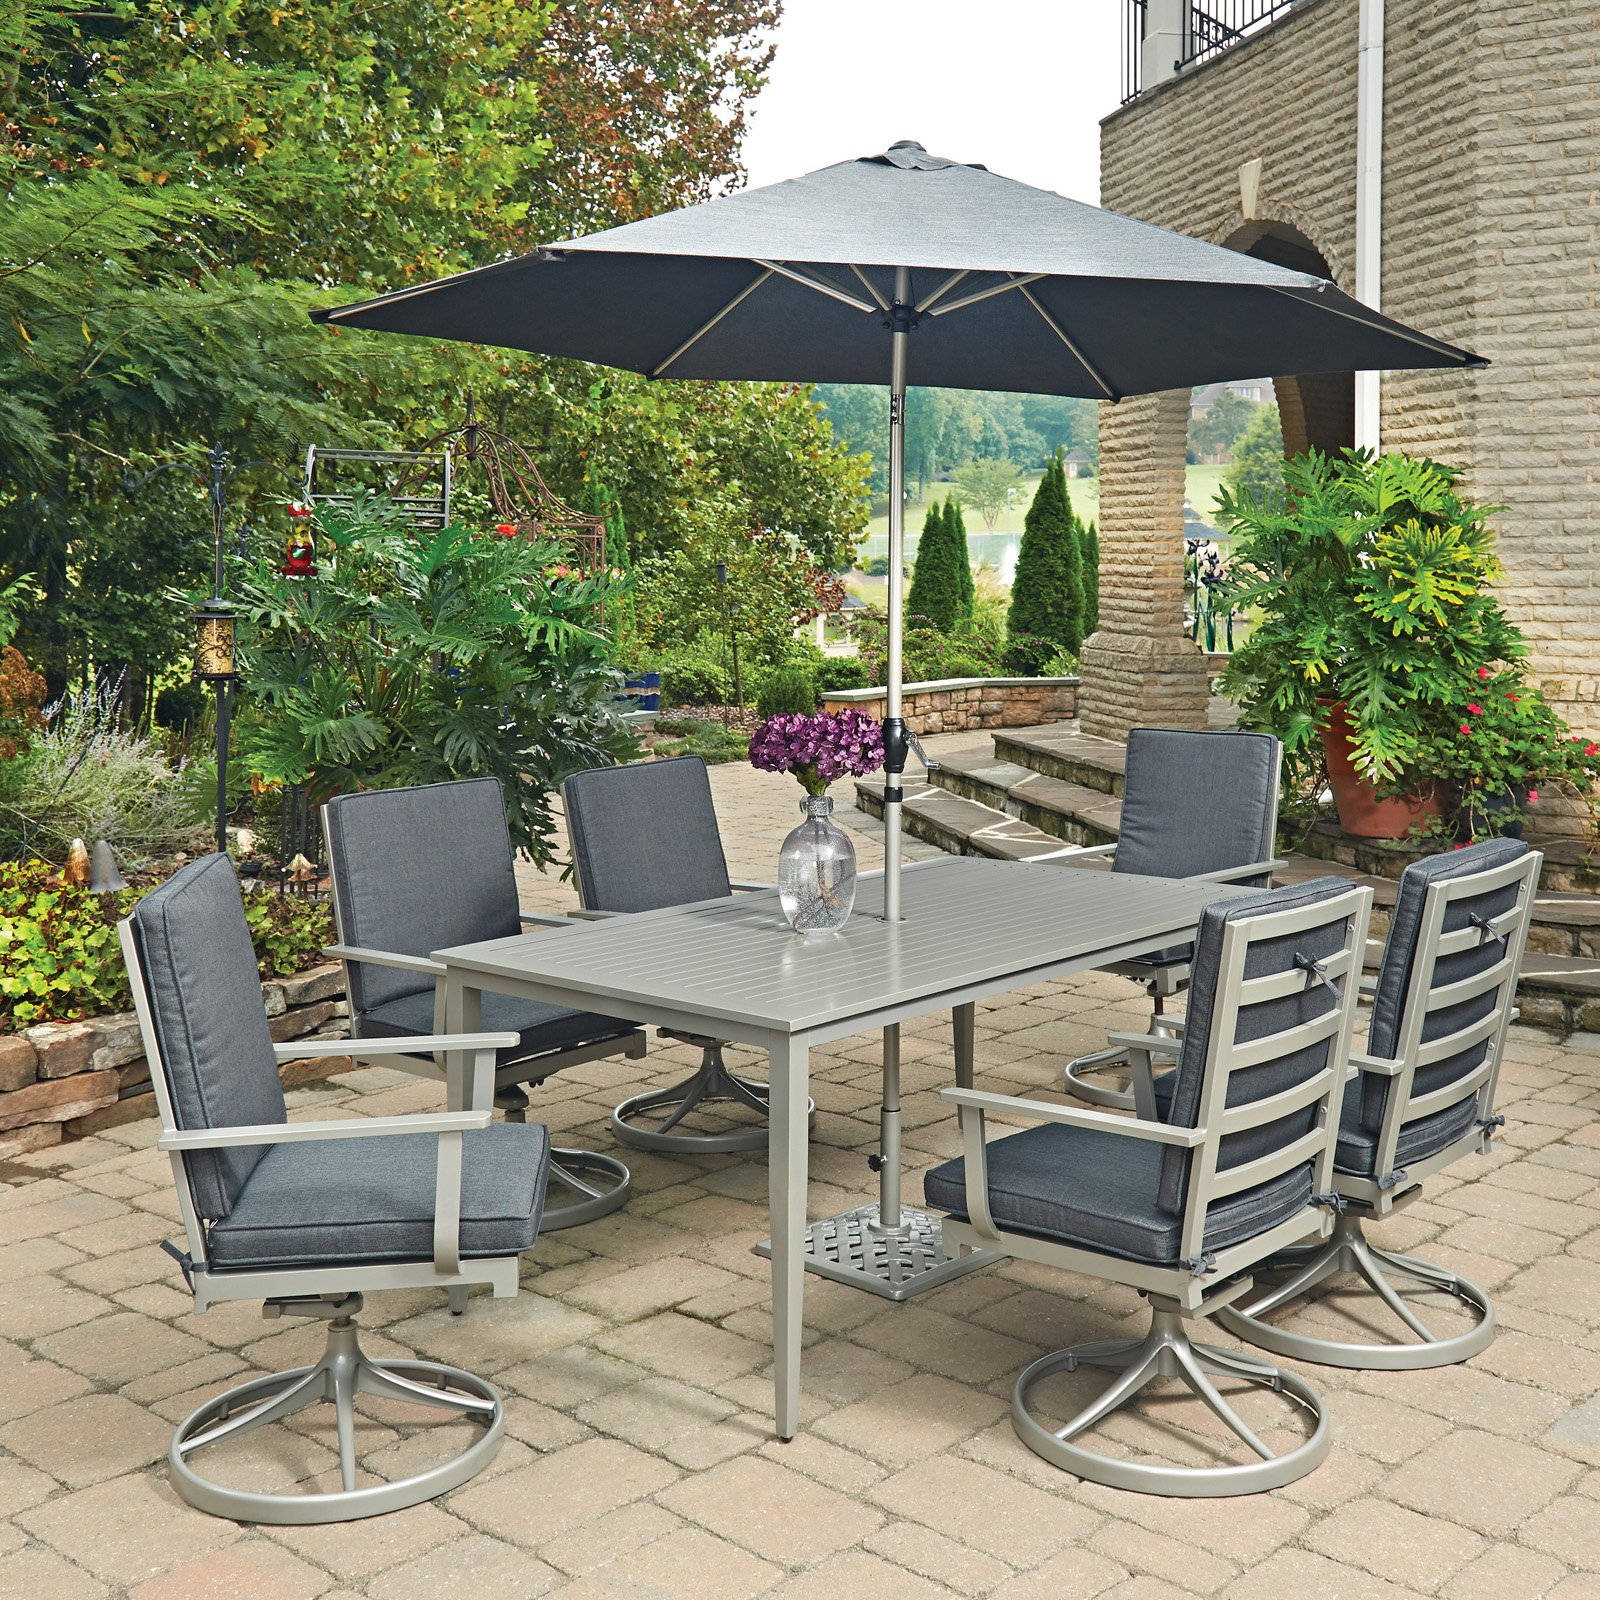 South Beach 9 Pc. Rectangular Outdoor Dining Table; 6 Swivel Rocking Chairs with Umbrella & Base